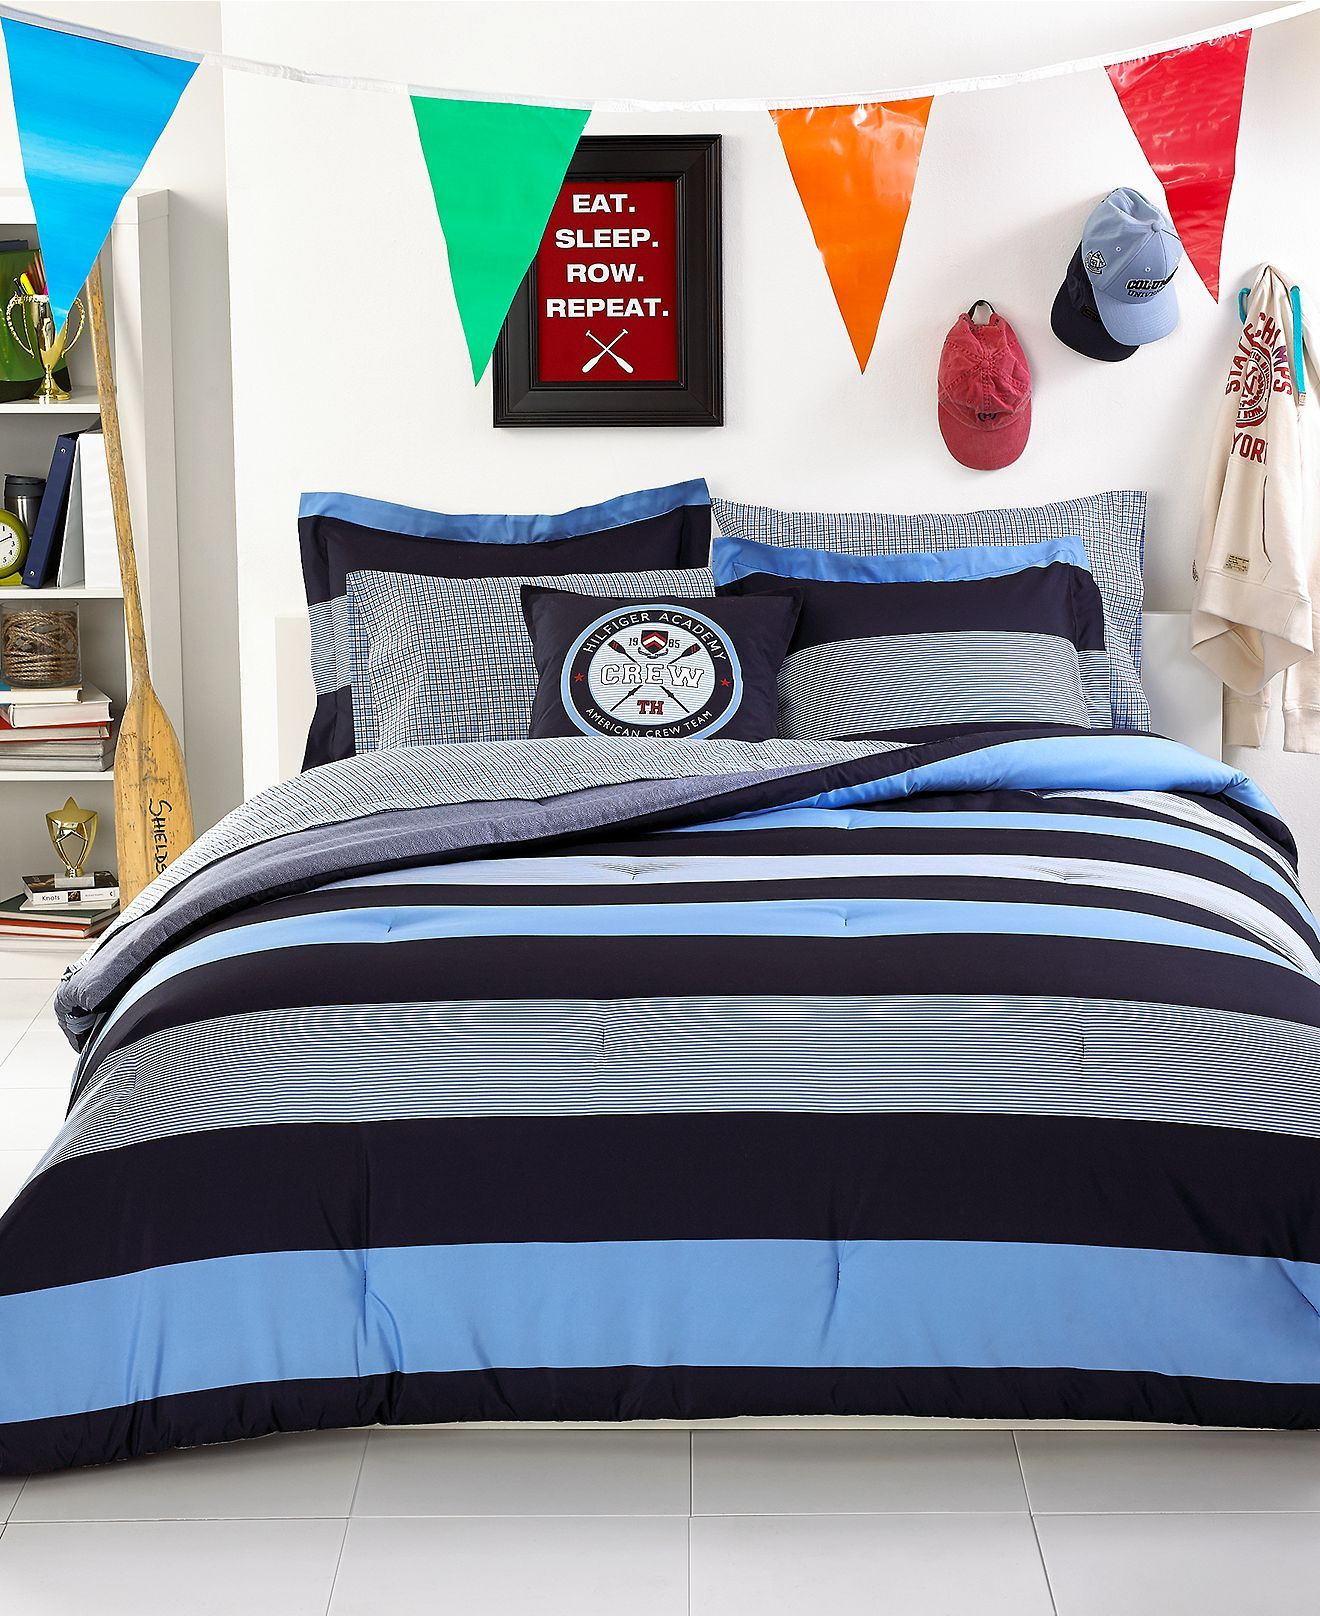 Tommy Hilfiger Bedding Wyndham Rugby forter Sets Bed in a Bag